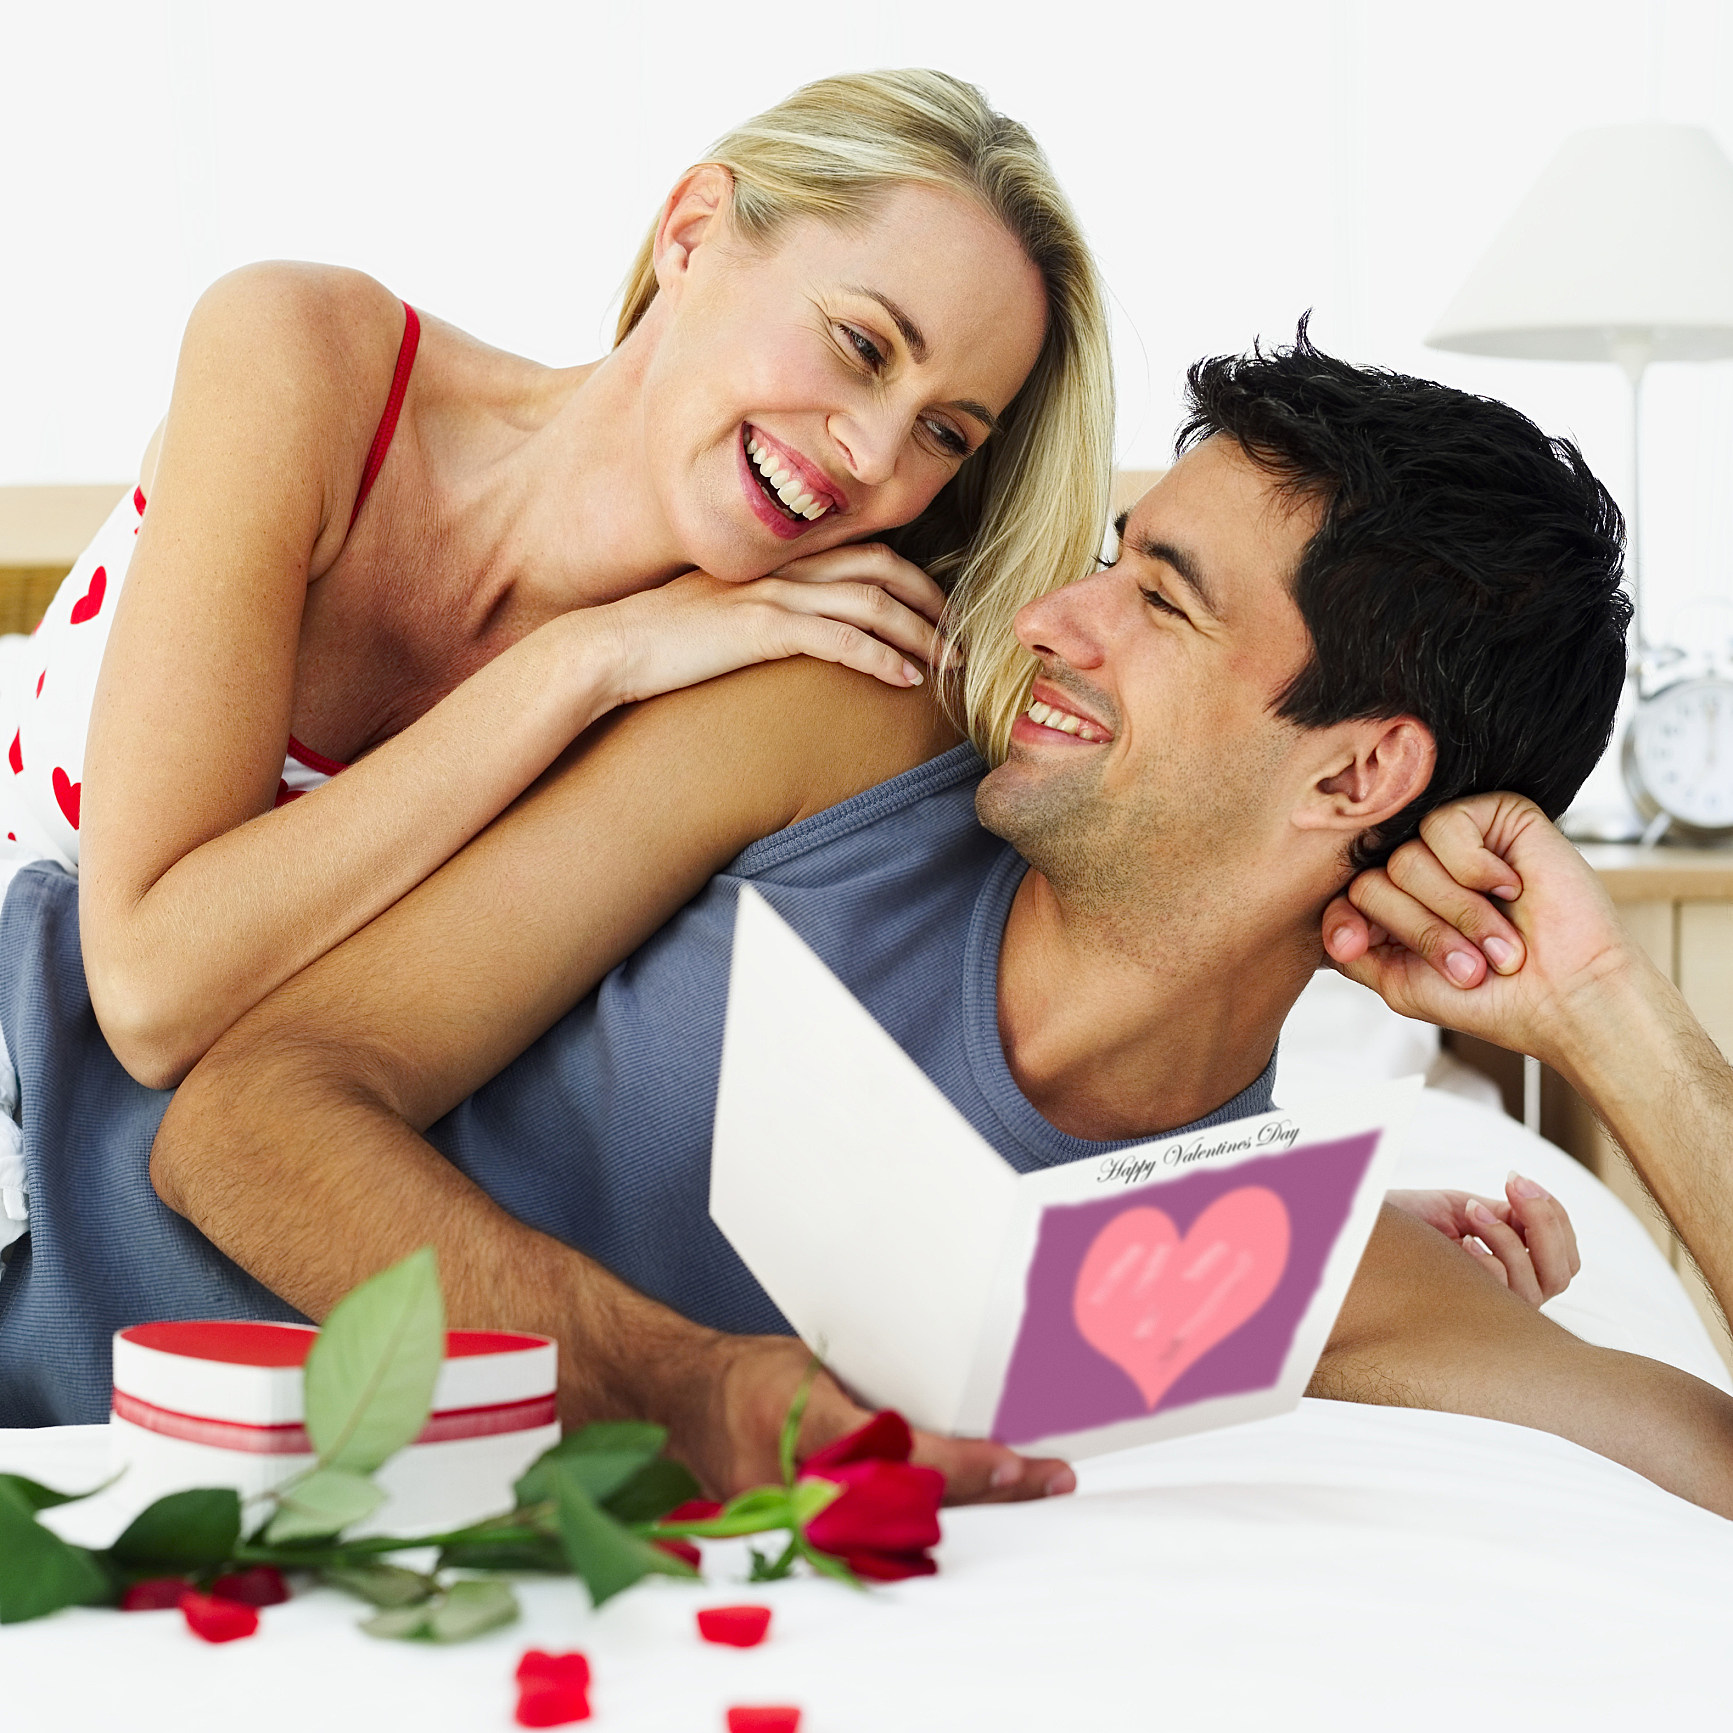 Valentine gift ideas for him just started dating